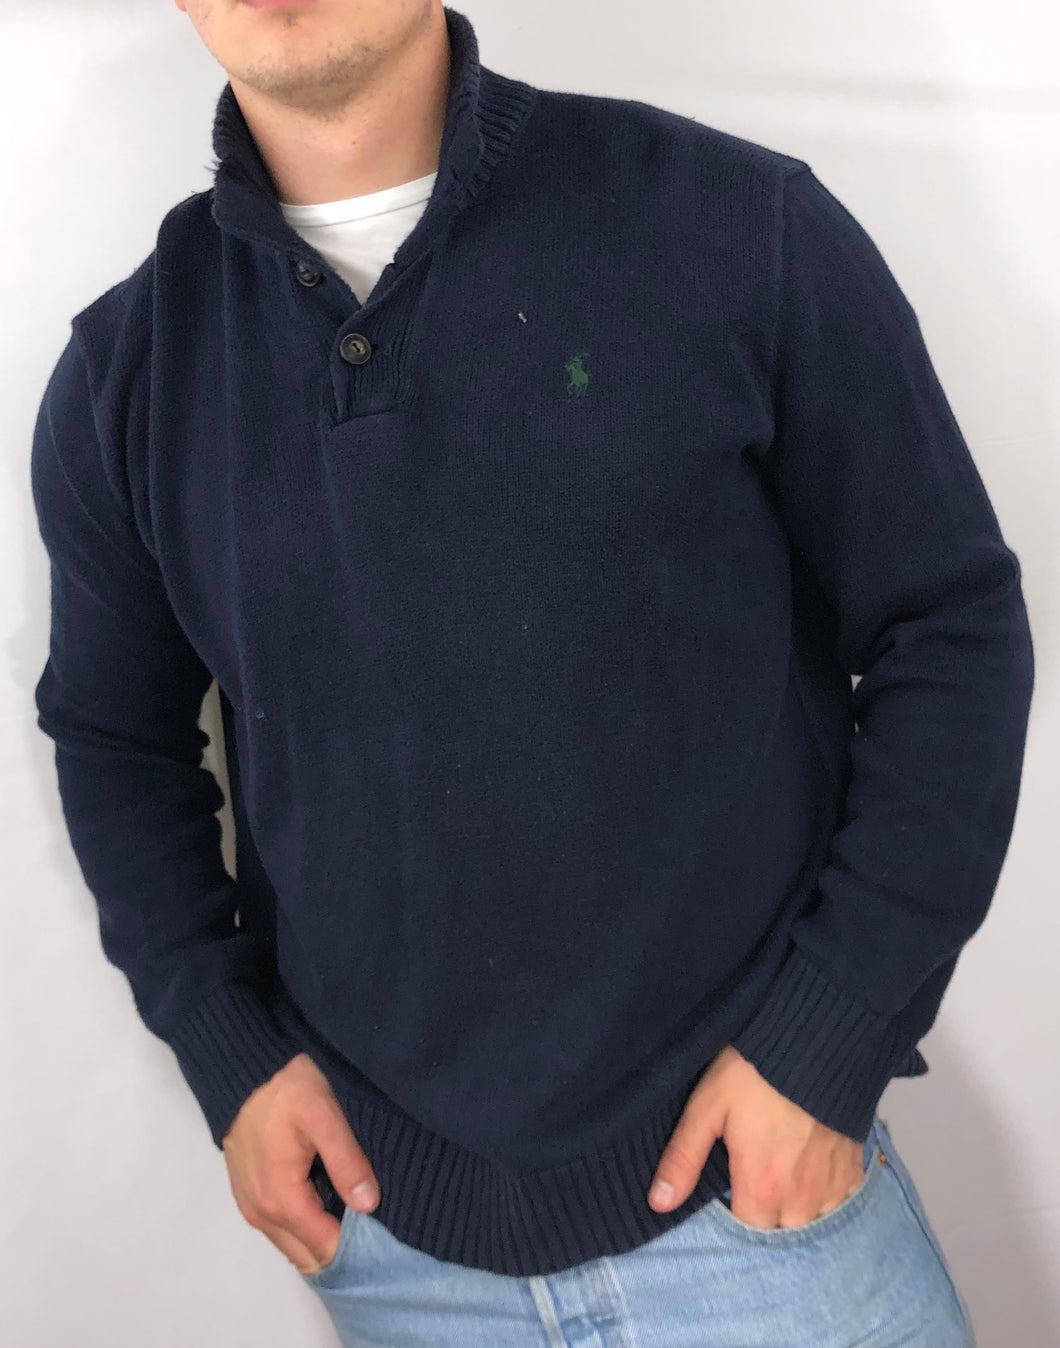 Ralph Lauren sweater - L